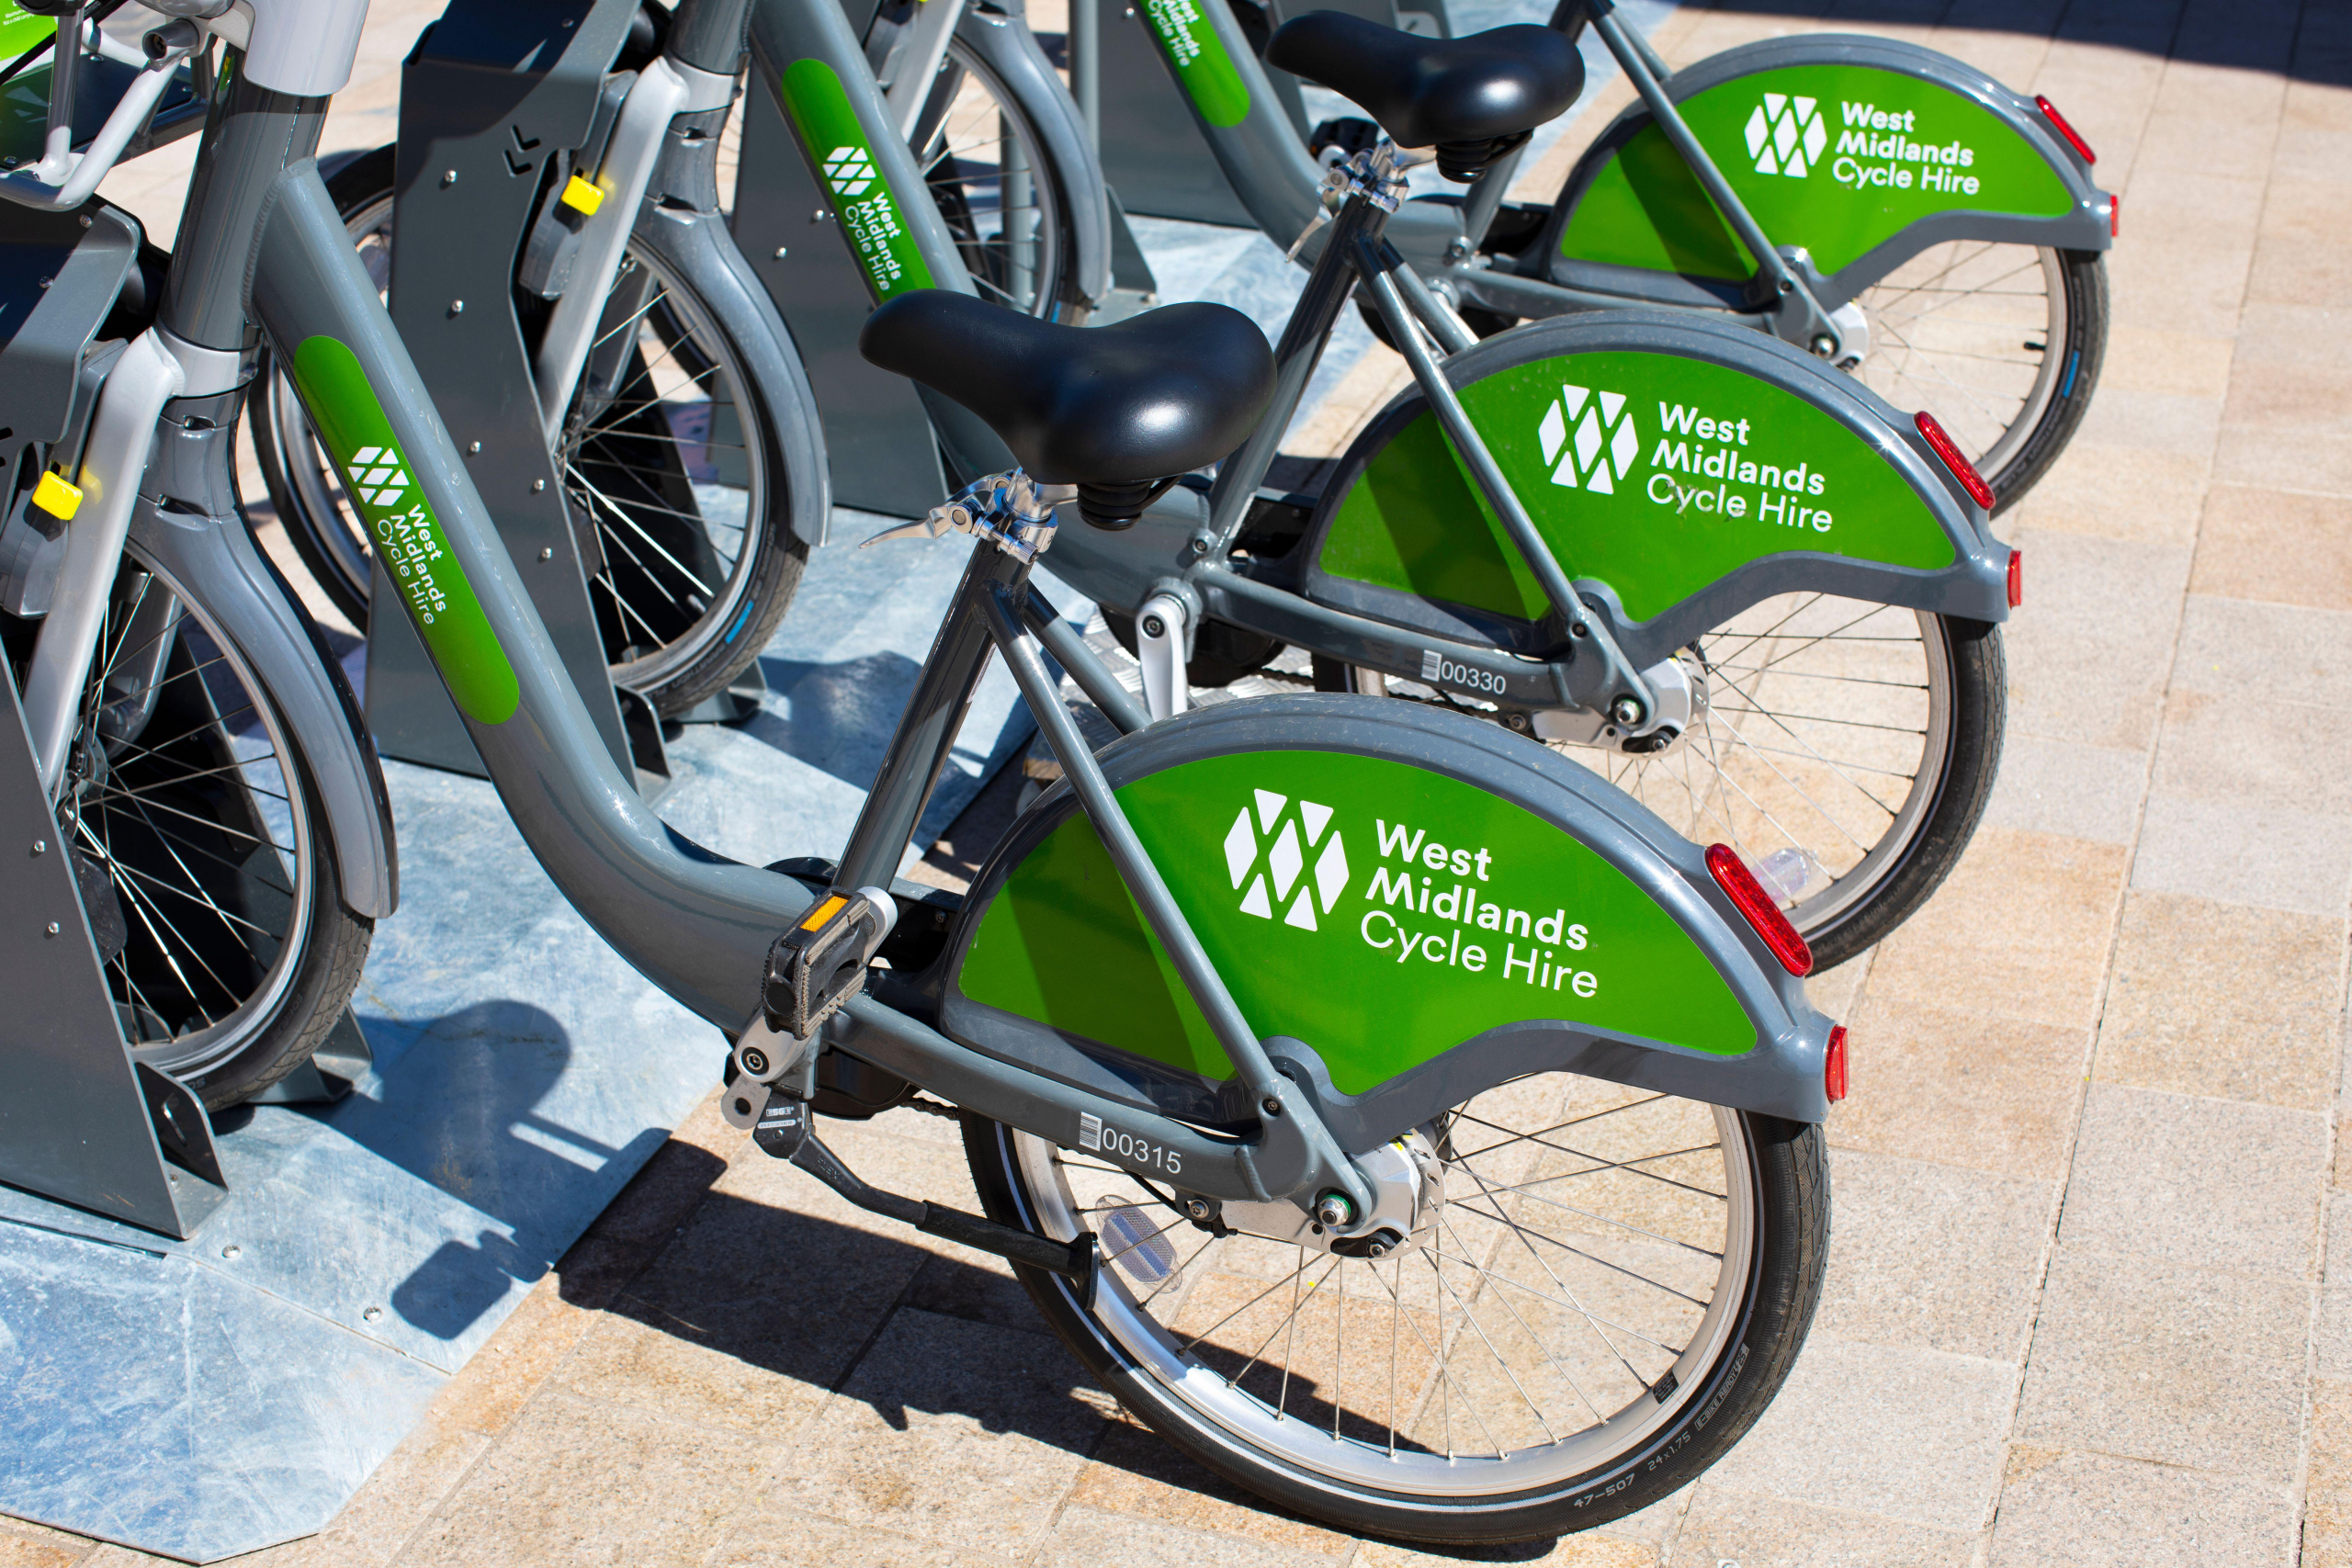 West Midlands Cycle Hire bikes